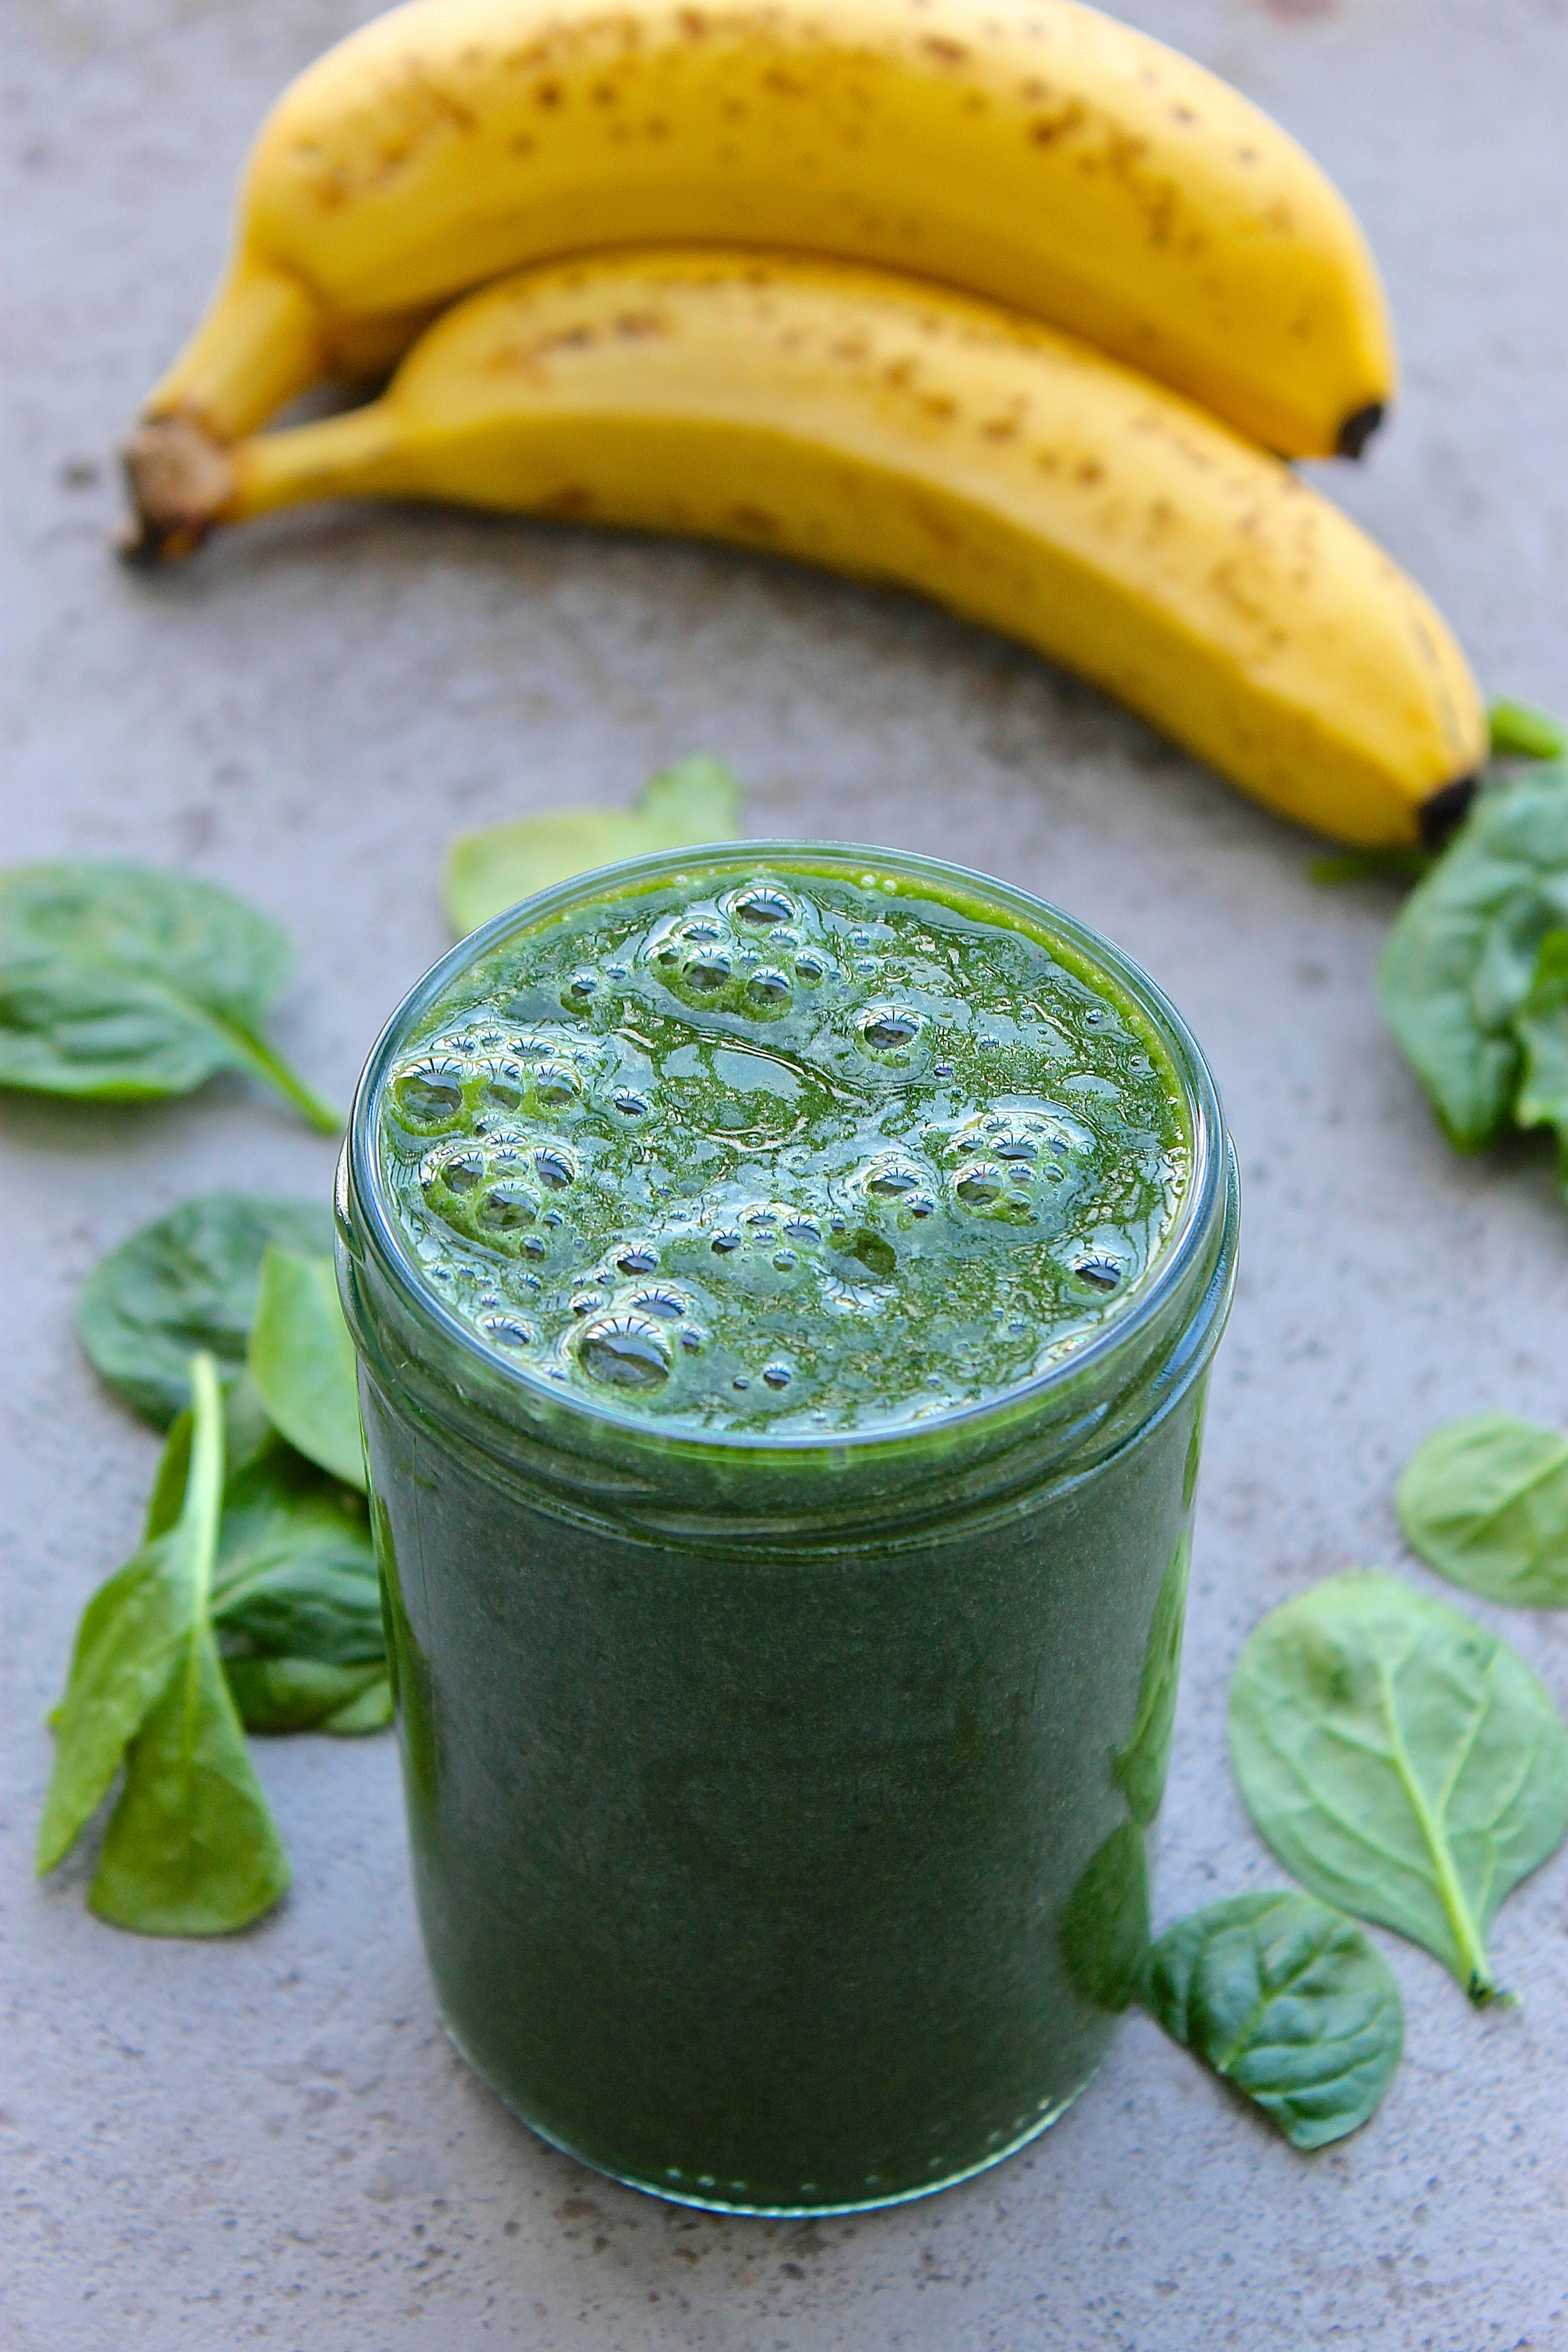 Spinach & Spirulina Smoothie